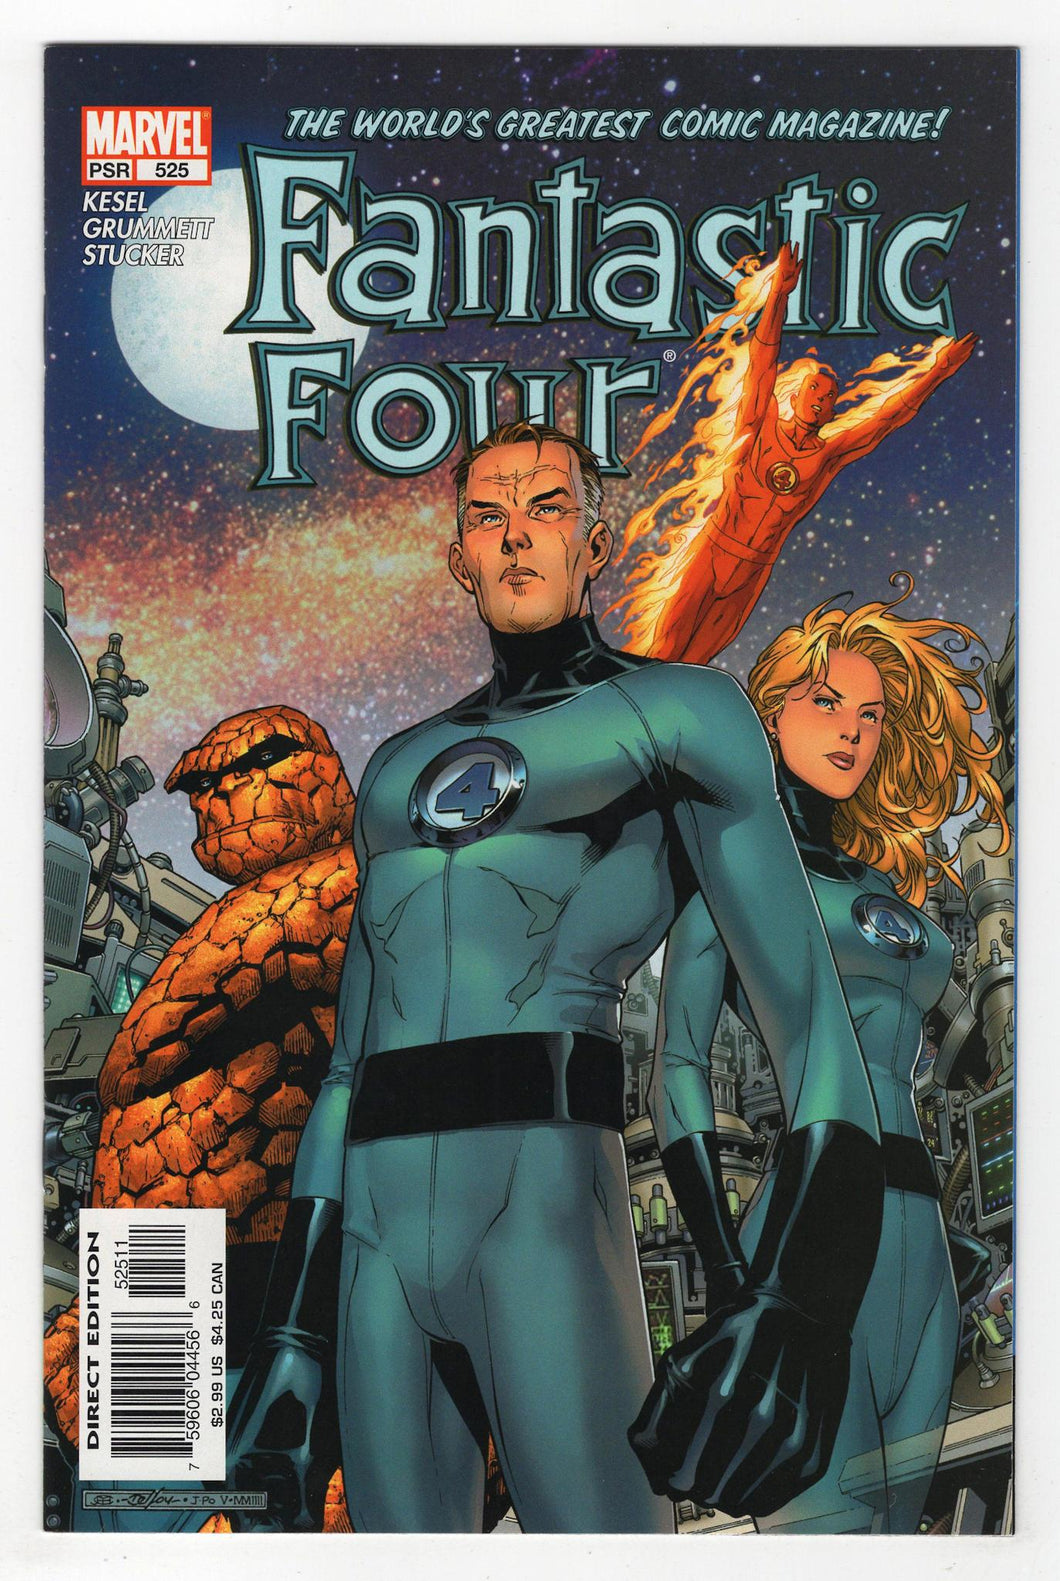 Fantastic Four #525 Cover Front